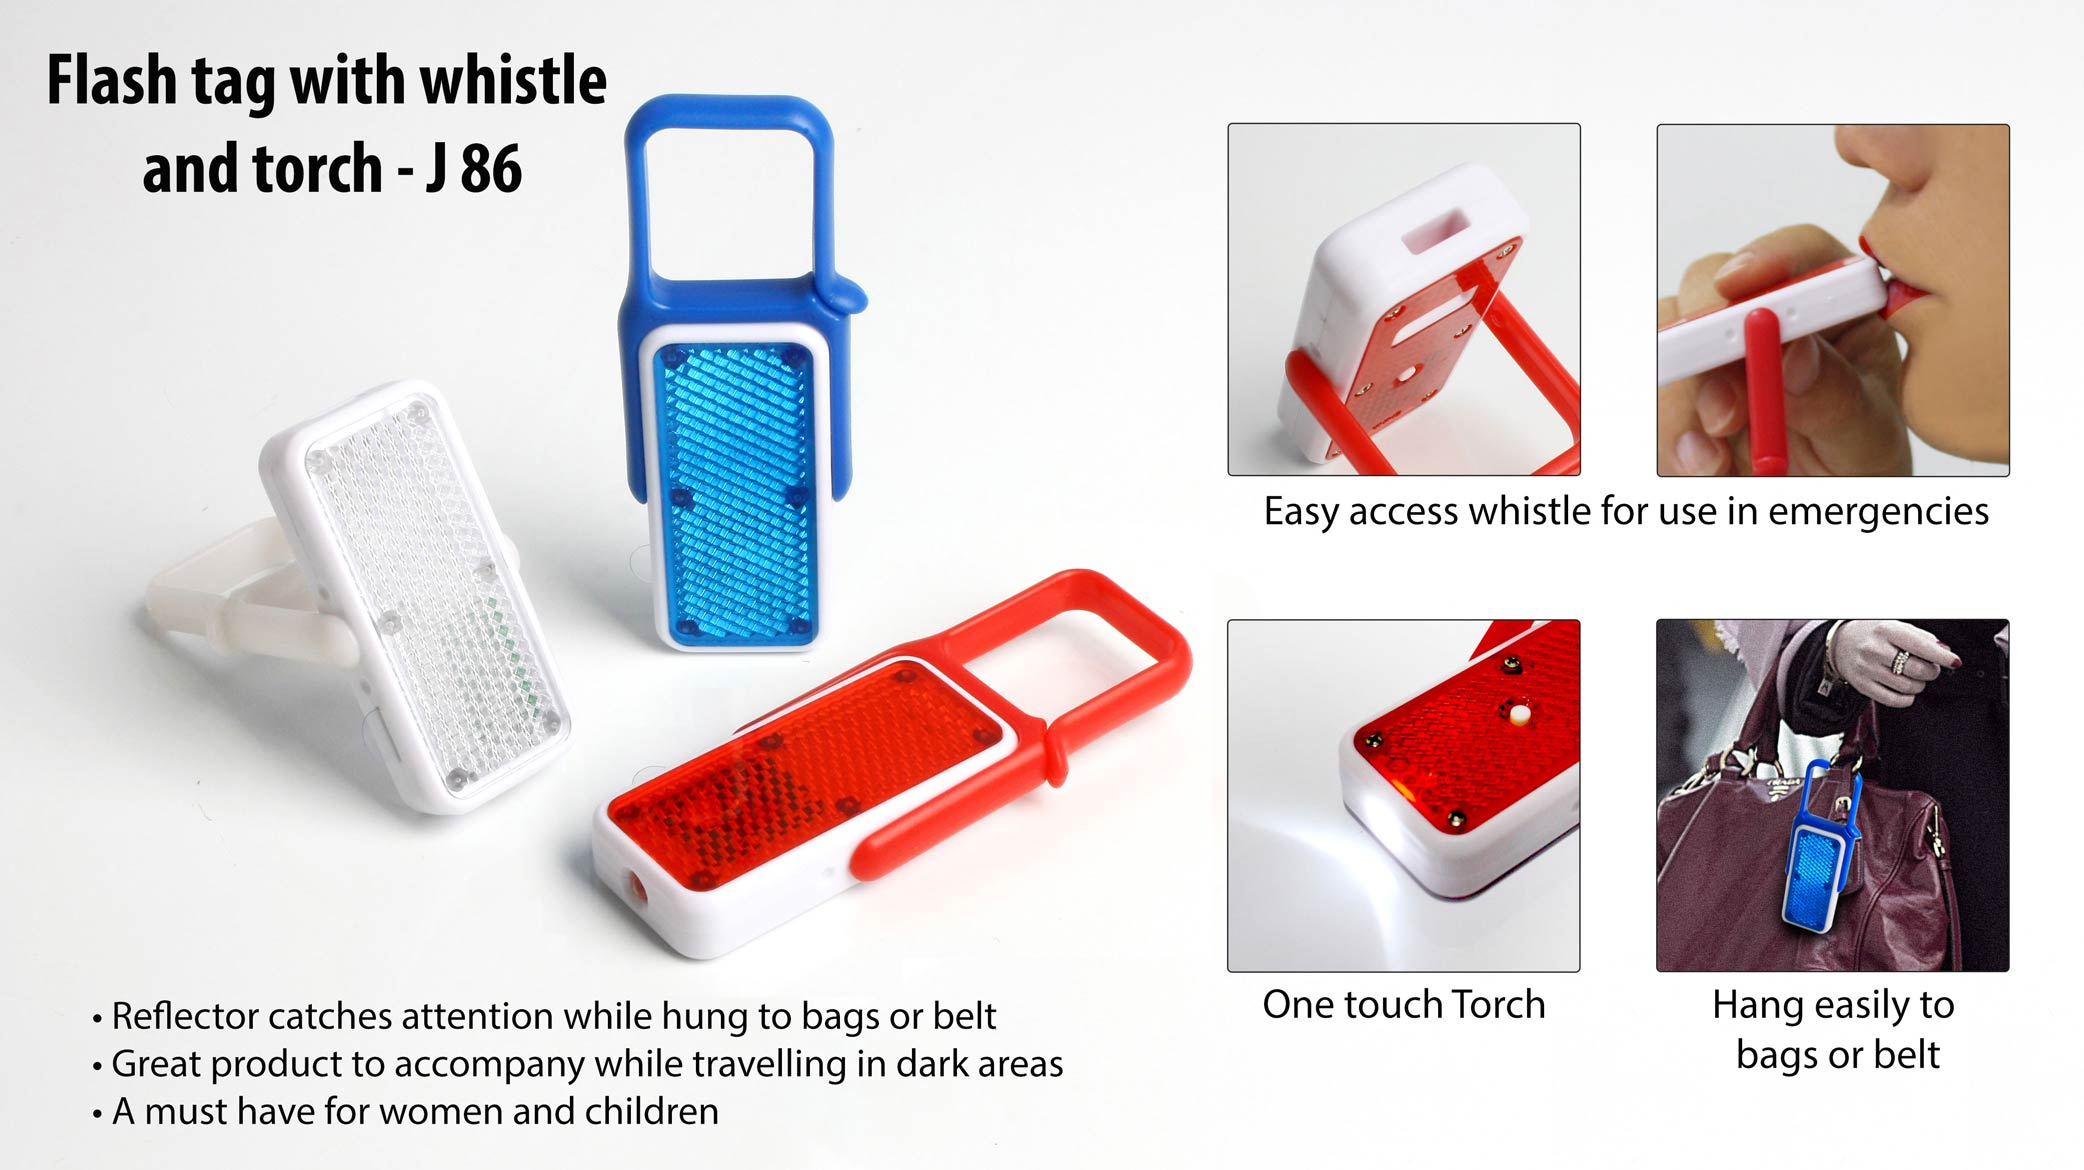 J86 - FLASH TAG WITH WHISTLE AND TORCH